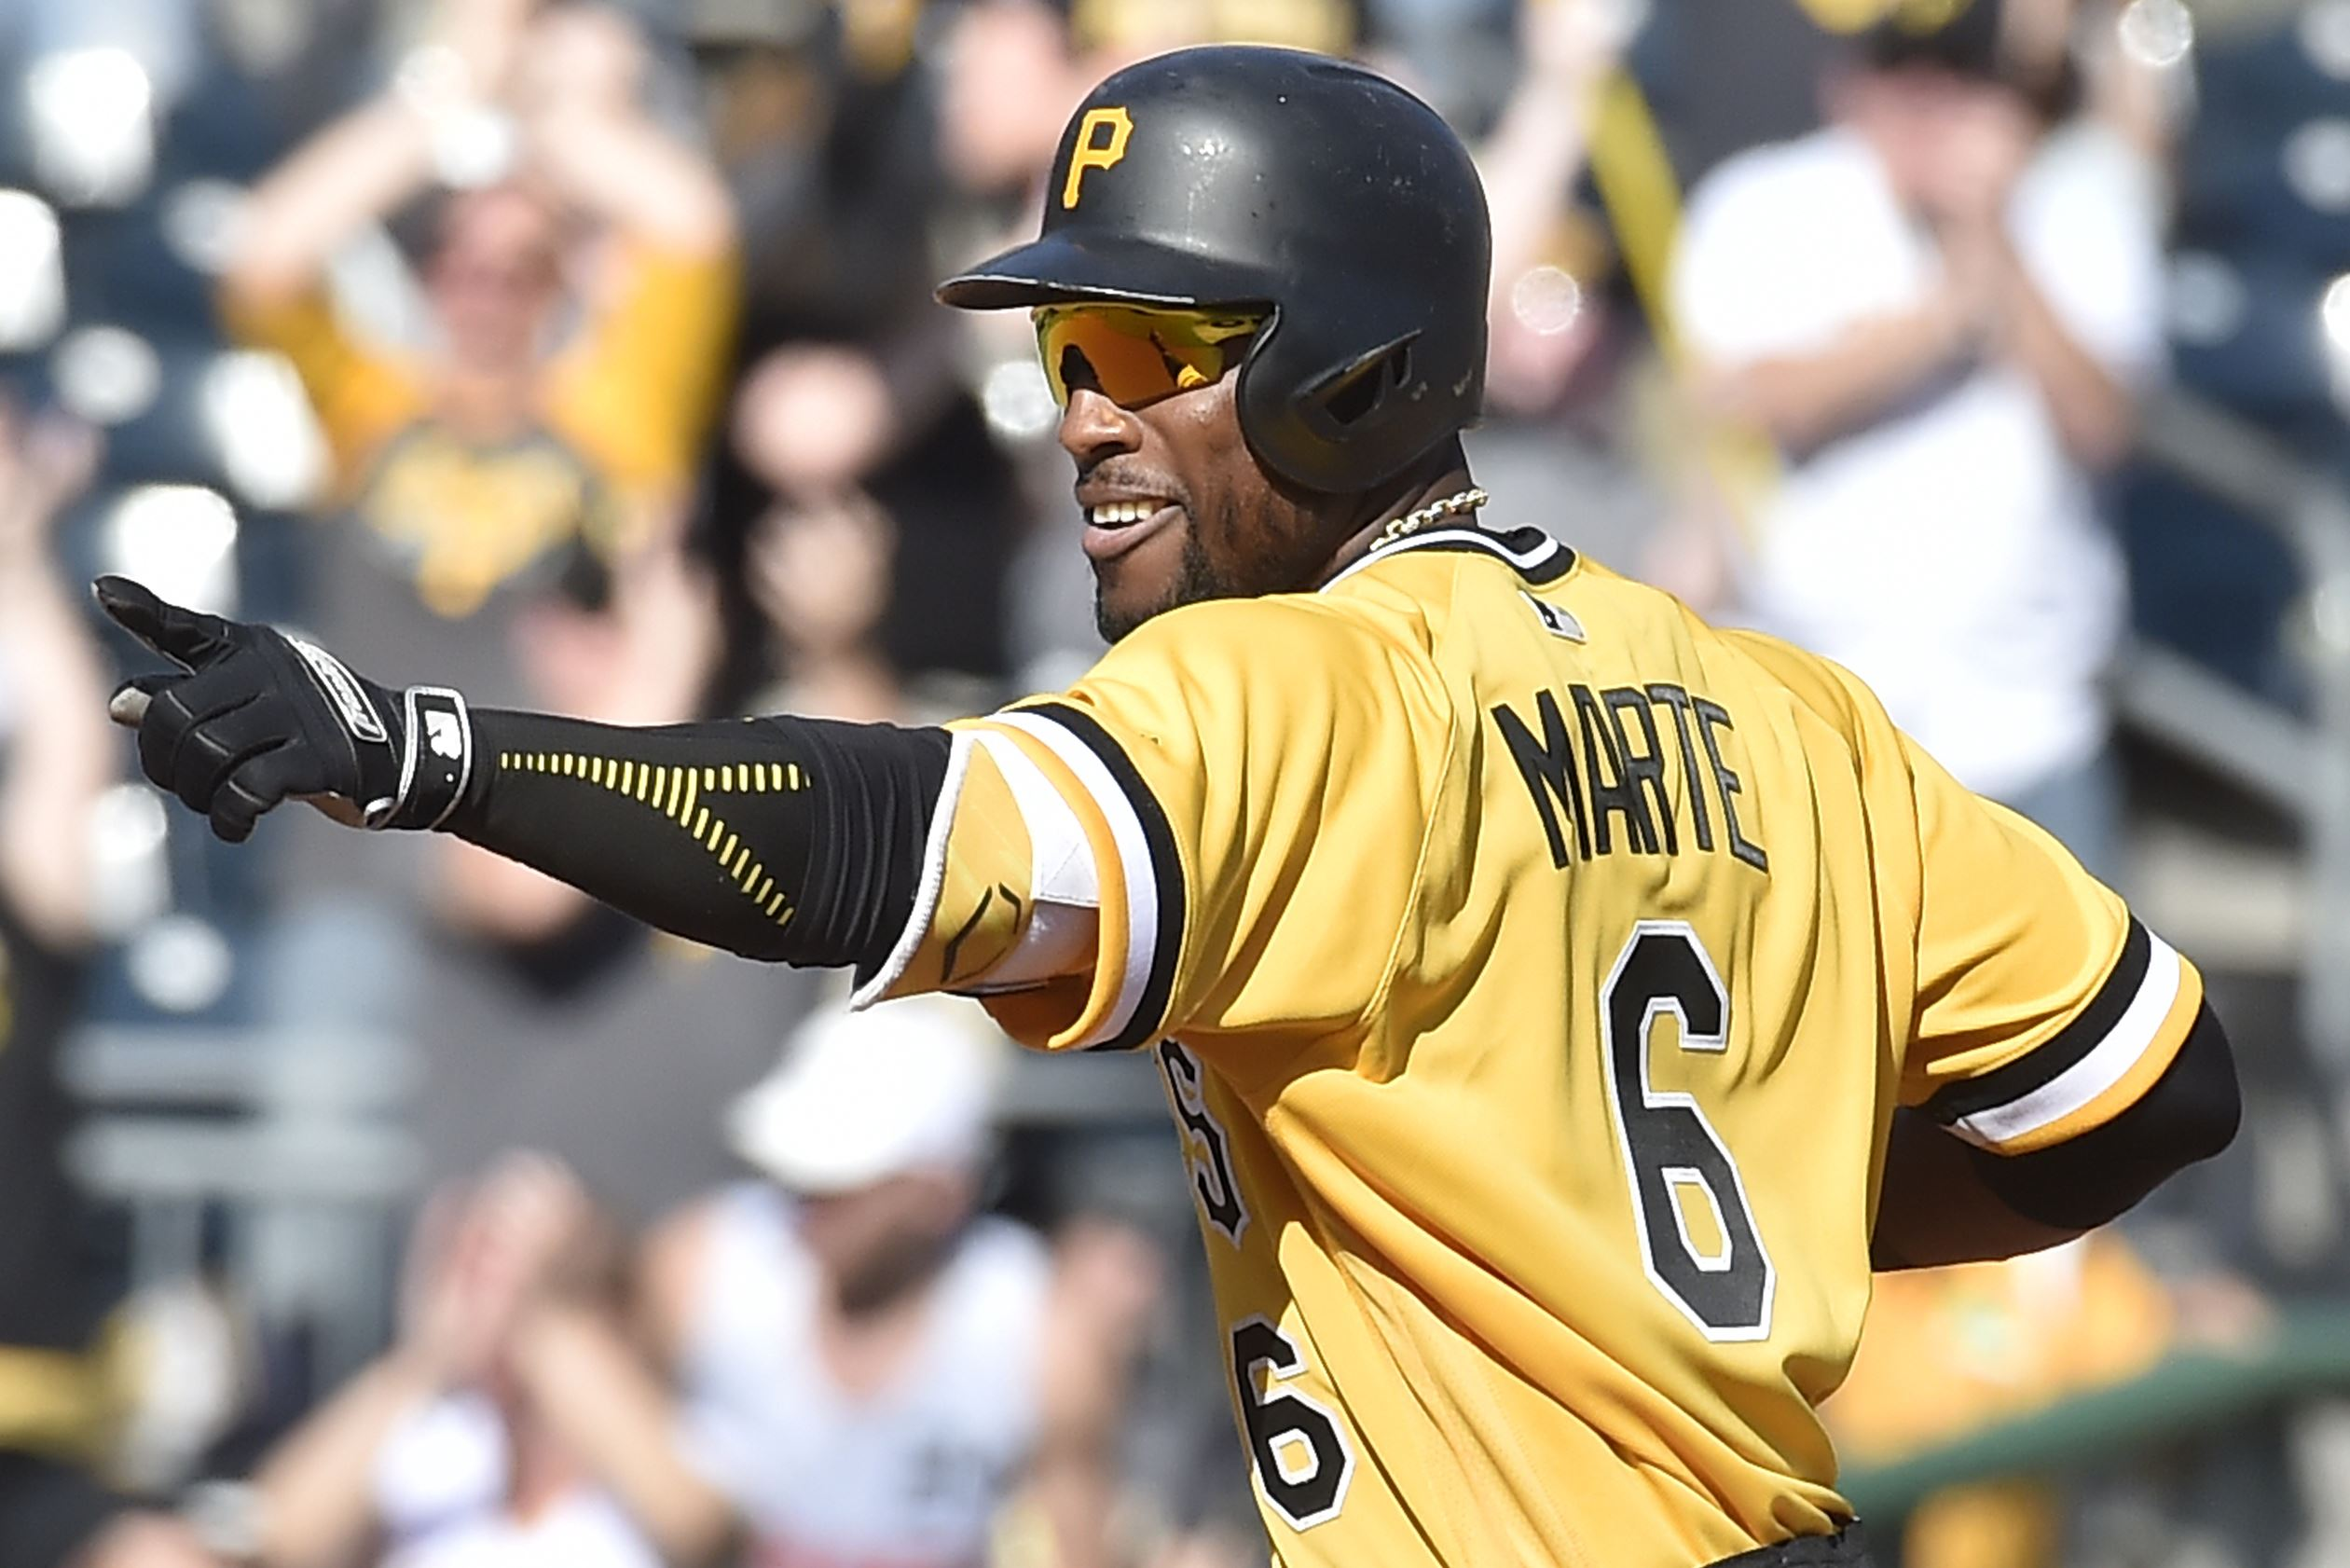 Starling Marte suspended 80 games for PED violation ...